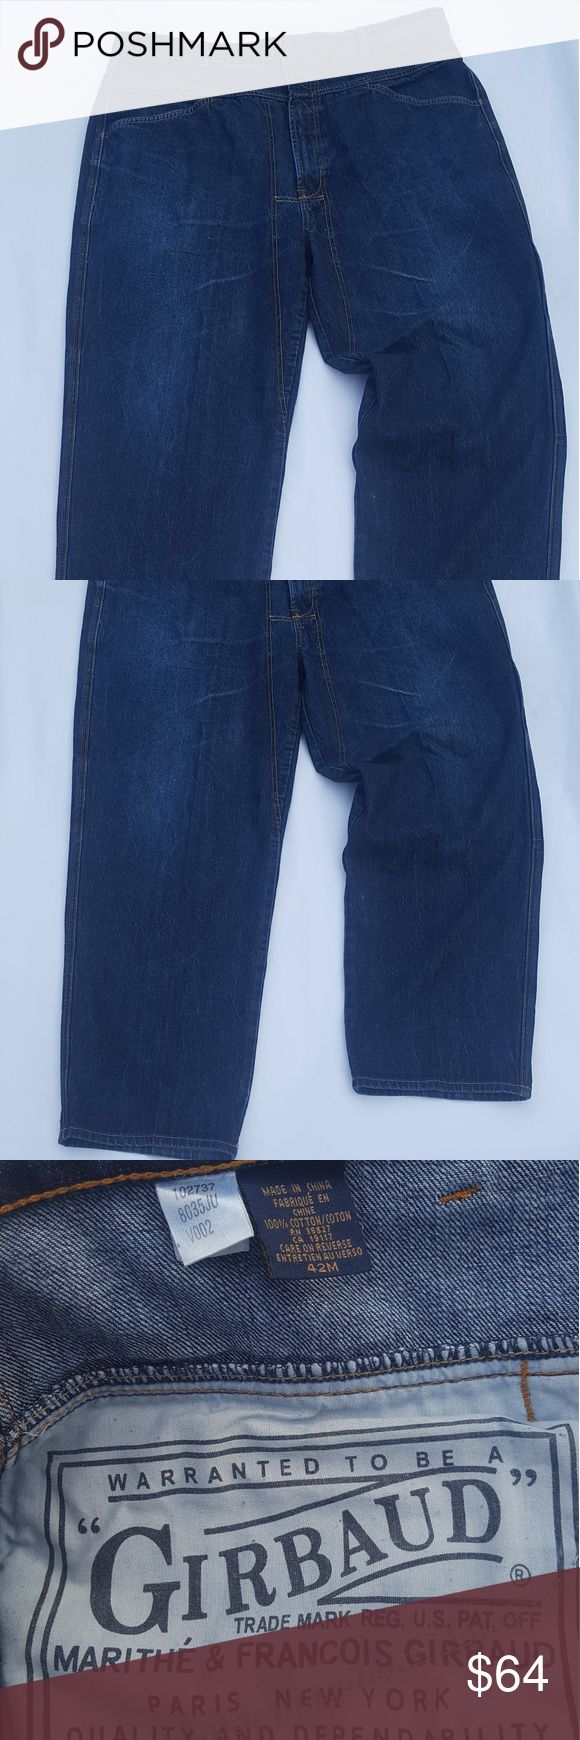 Mens Marithe Girbaud Jeans Baggy Fit (42 x 30L) Mens Vintage Marithe Francois Girbaud Jeans Baggy Fit (42 x 30L) Large Pockets, Dark Wash Marithe Francois Girbaud Jeans Relaxed